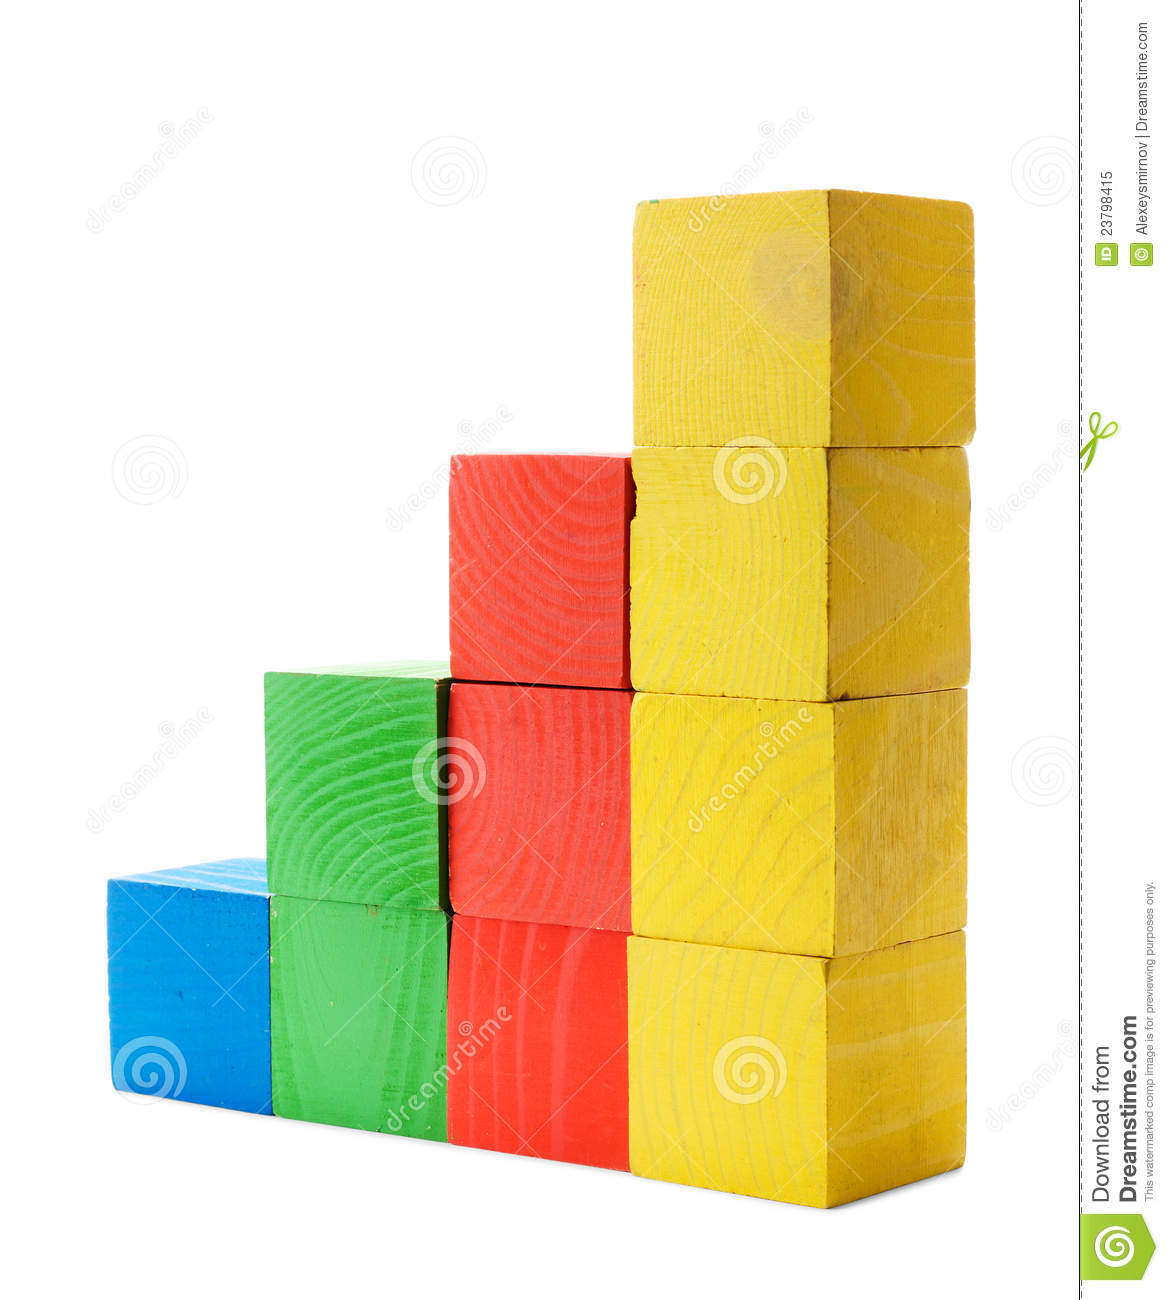 Color diagram chart of wooden blocks royalty free stock